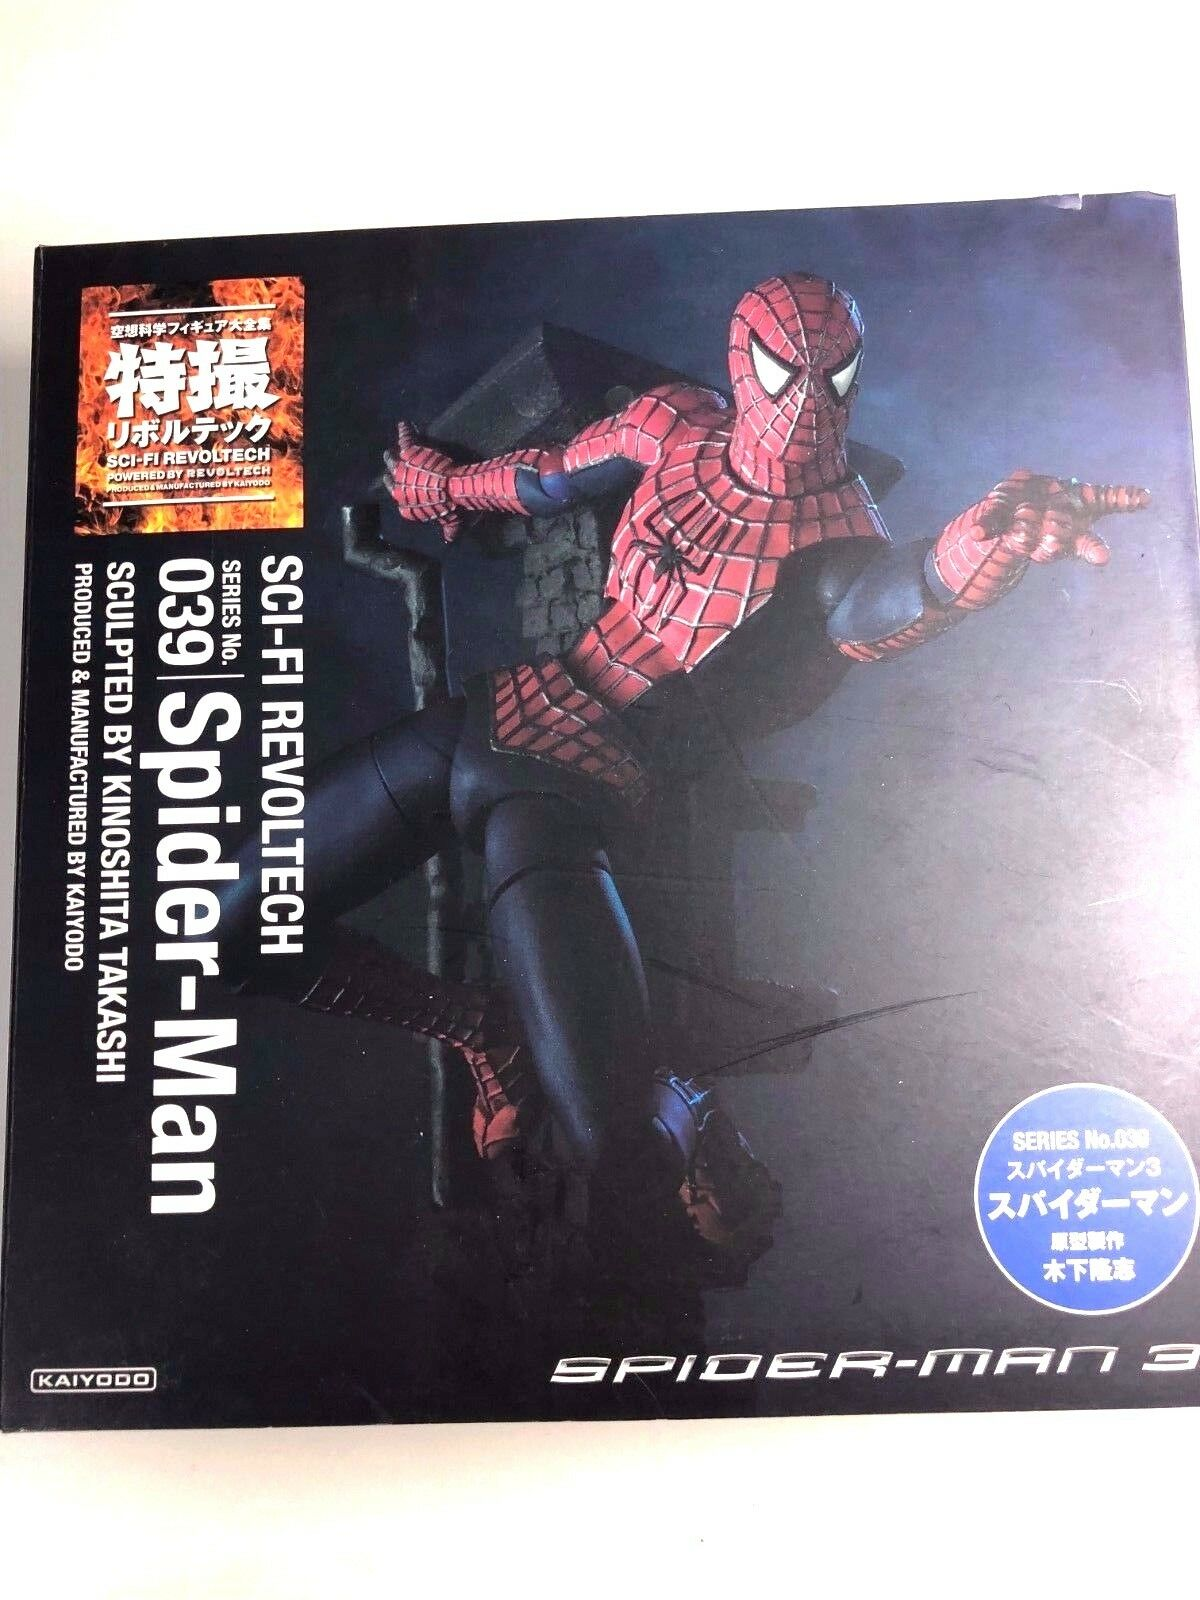 Free Shipping from Japan Authentic Revoltech Spider-Man Kaiyodo 039 marvel